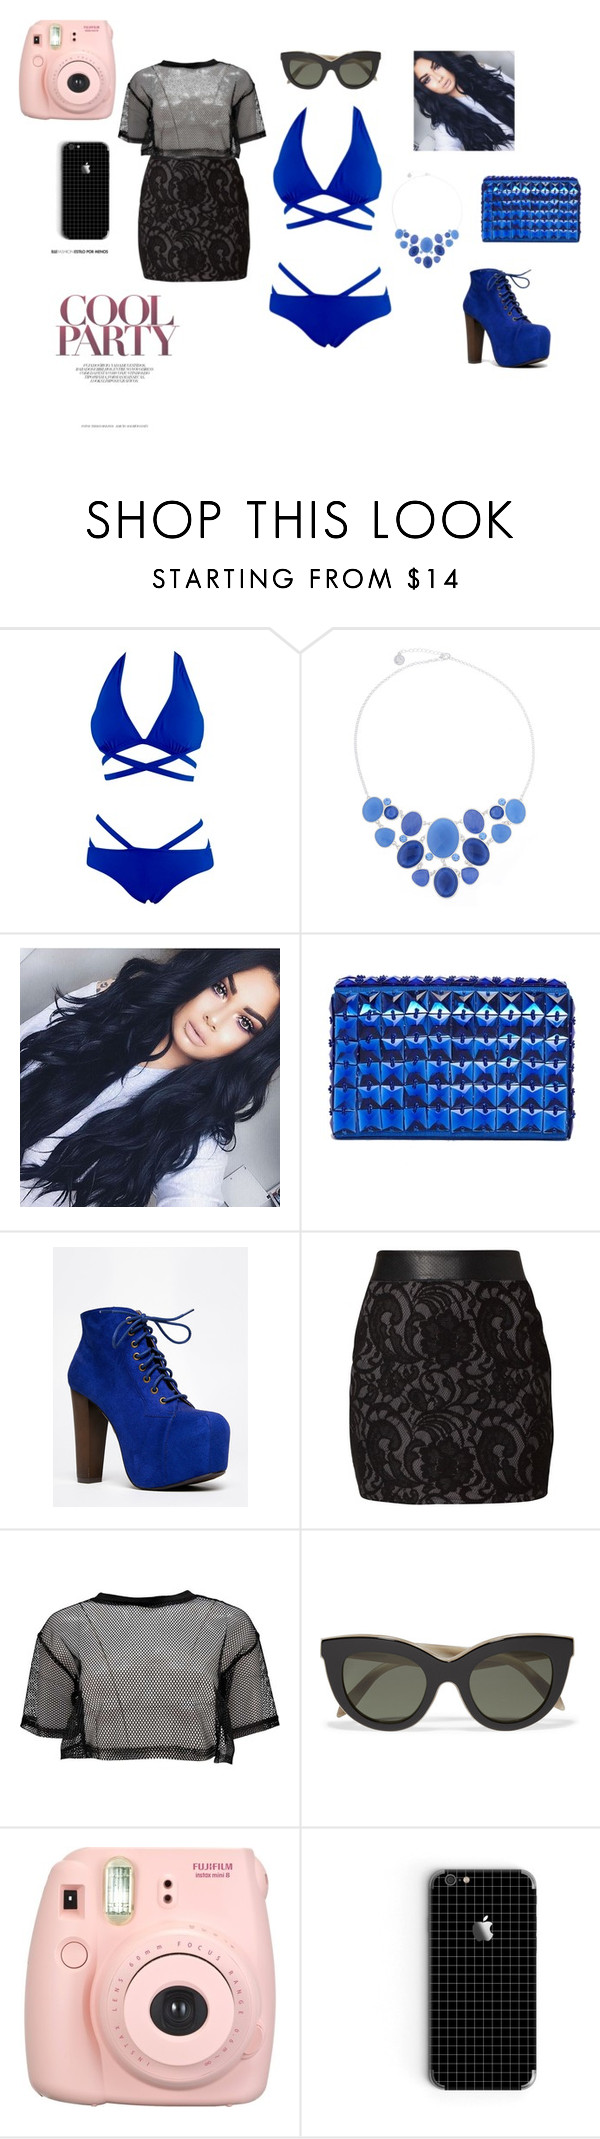 """hello summer party"" by sara-fumanti ❤ liked on Polyvore featuring Liz Claiborne, French Connection, Speed Limit 98, DEPT, Boohoo, Victoria Beckham and Fujifilm"